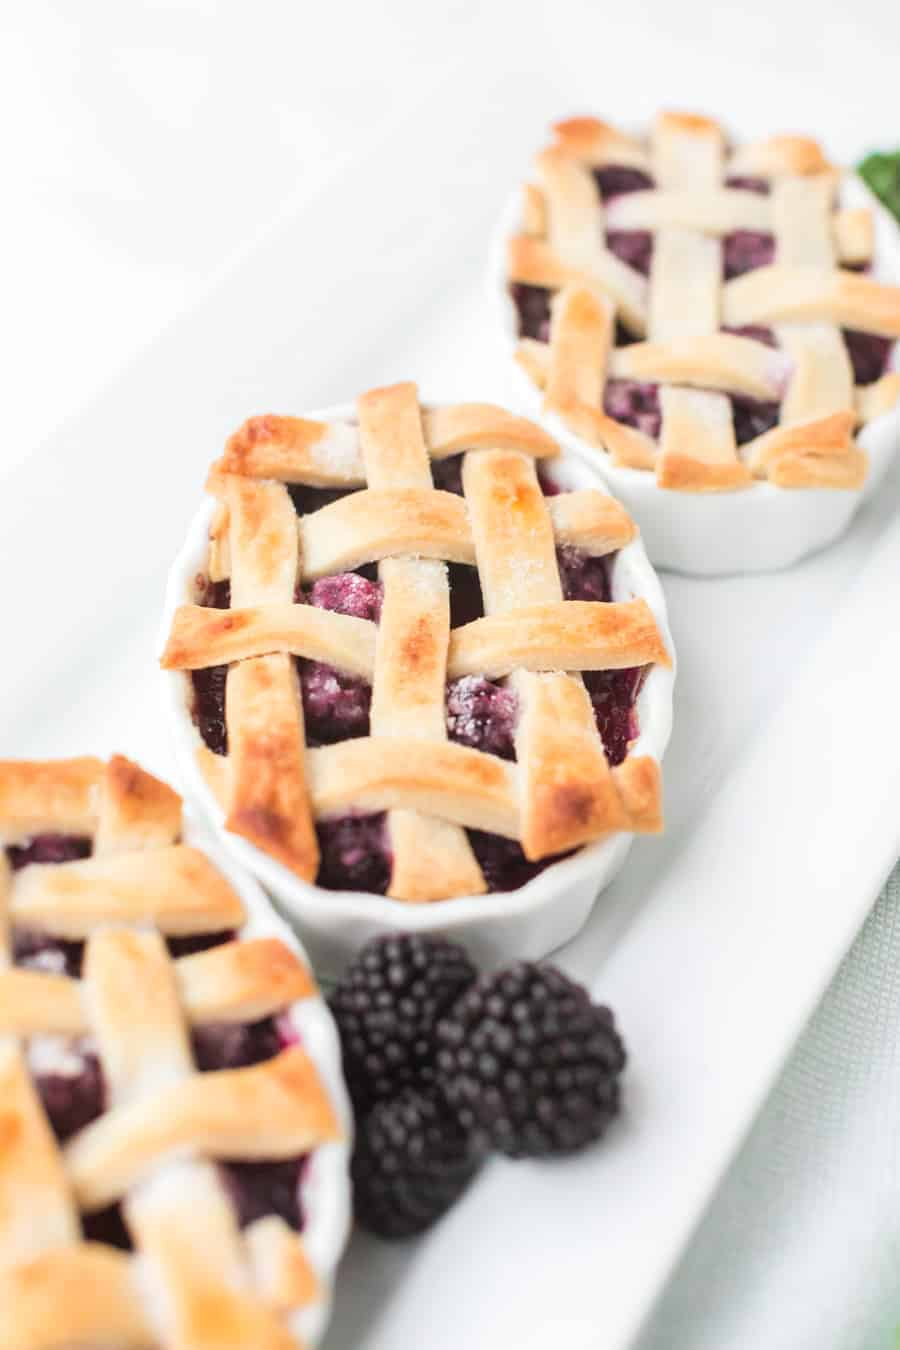 Blackberry cobbler made with blackberries and a flaky pie crust is a favorite family dessert passed down by my grandmother. #blackberrycobbler #cobbler #blackberry #dessert #baking #familyrecipe